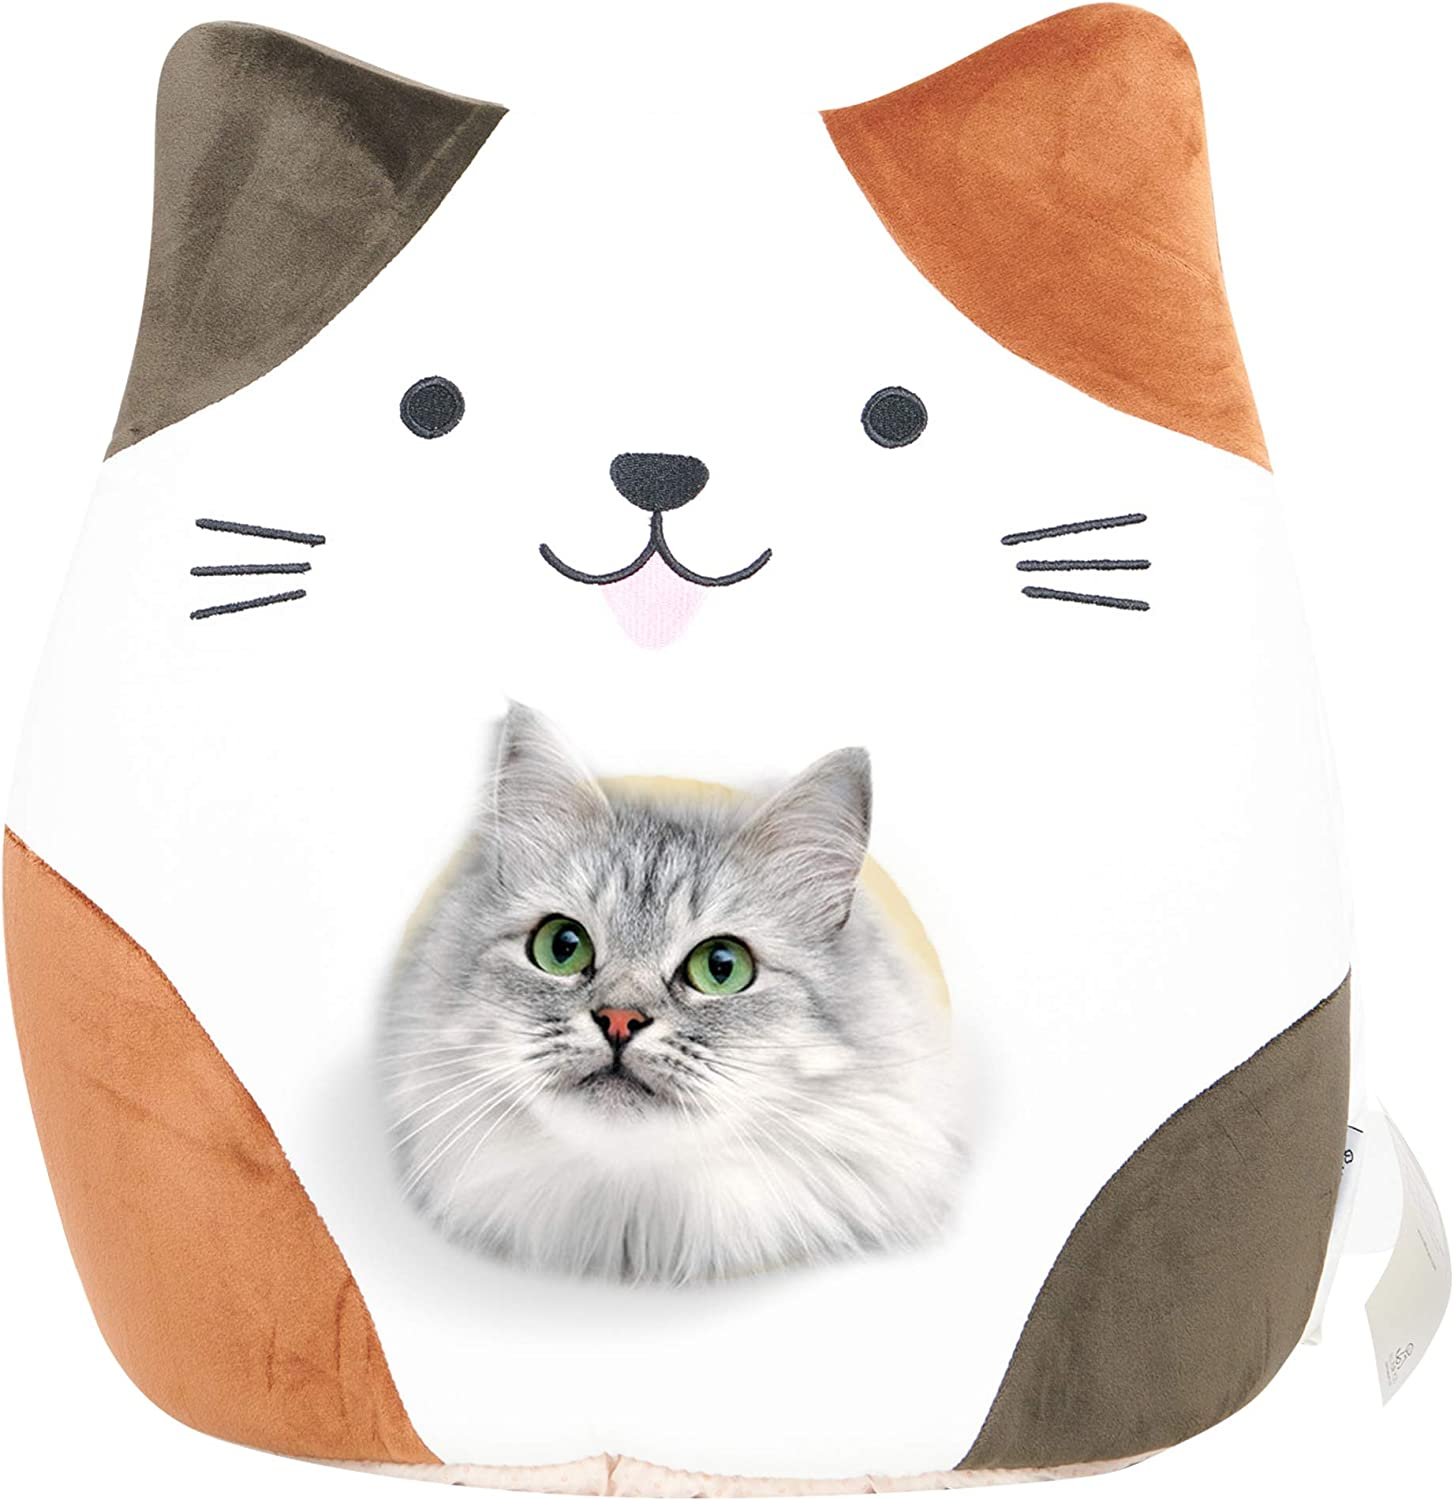 All Fur You Cat Face Cat Cave Bed, Cat House for Indoor Cats, Cubby Cat Hideaway Dome Bed Cat Tent Pod Igloo Pet Cave Cat Home Pet Cubes Felt Warm Cozy Caves Cat Hut Covered Beds Puppy Houses